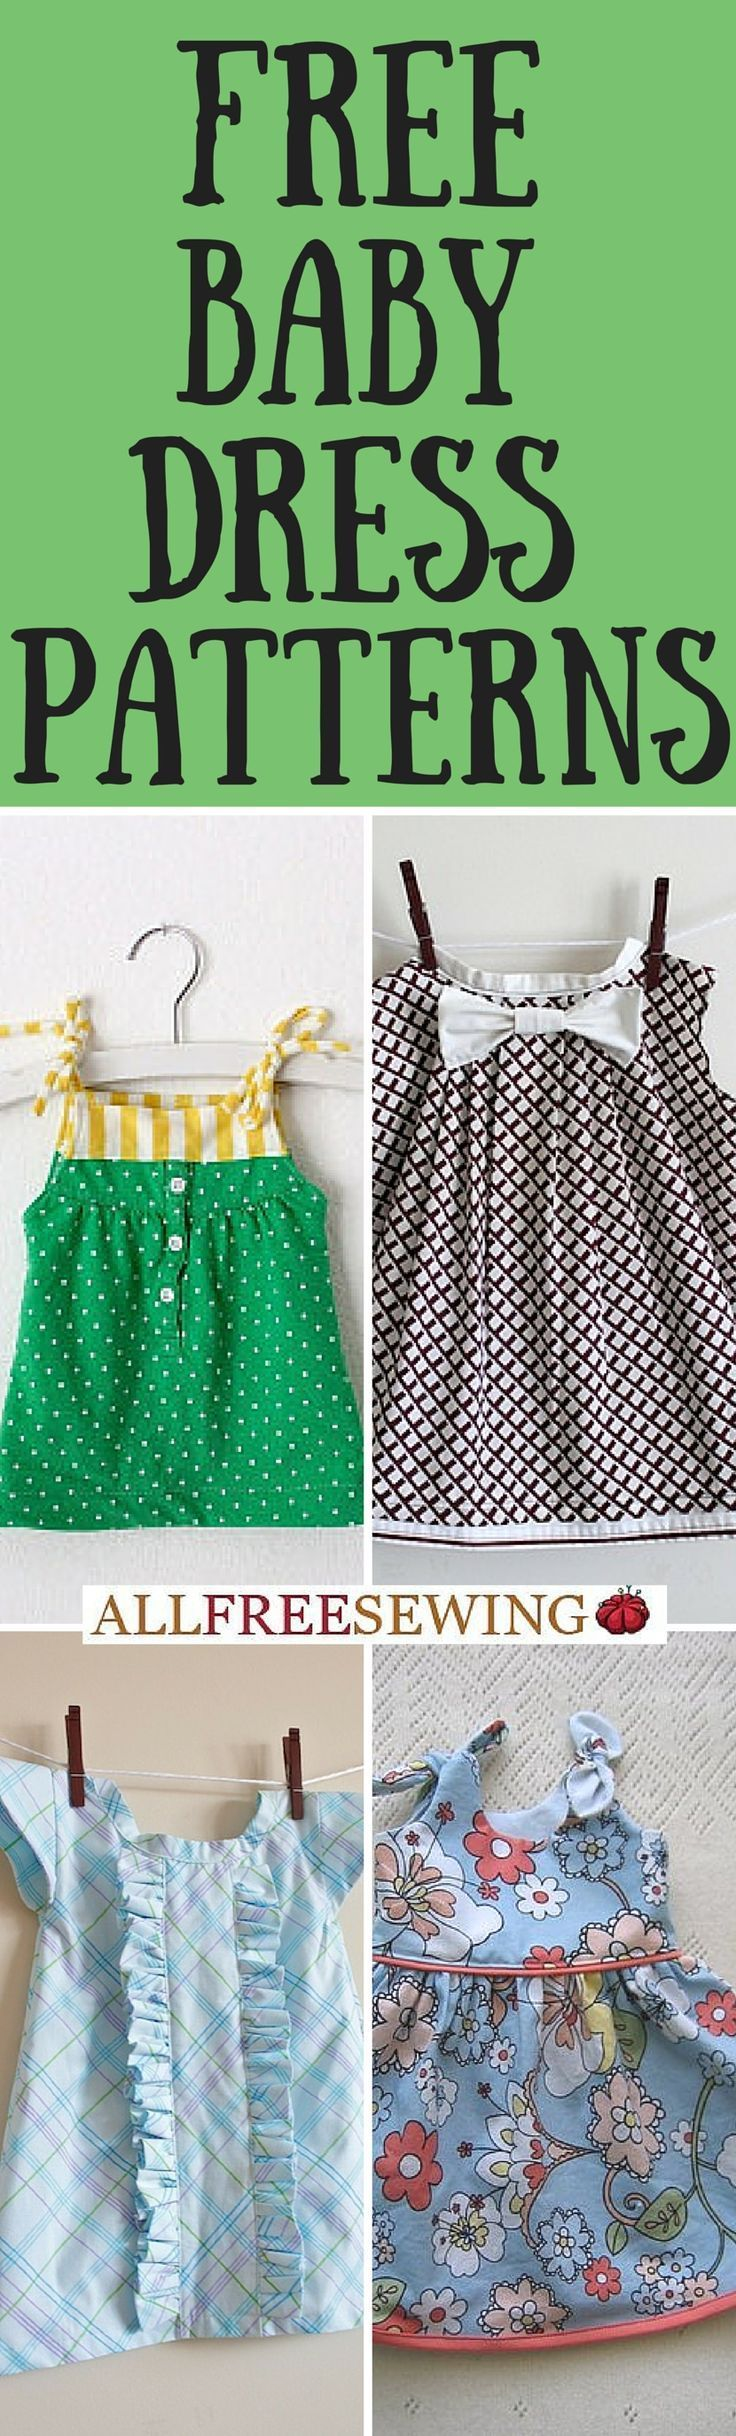 Find a baby dress pattern perfect for your little one.